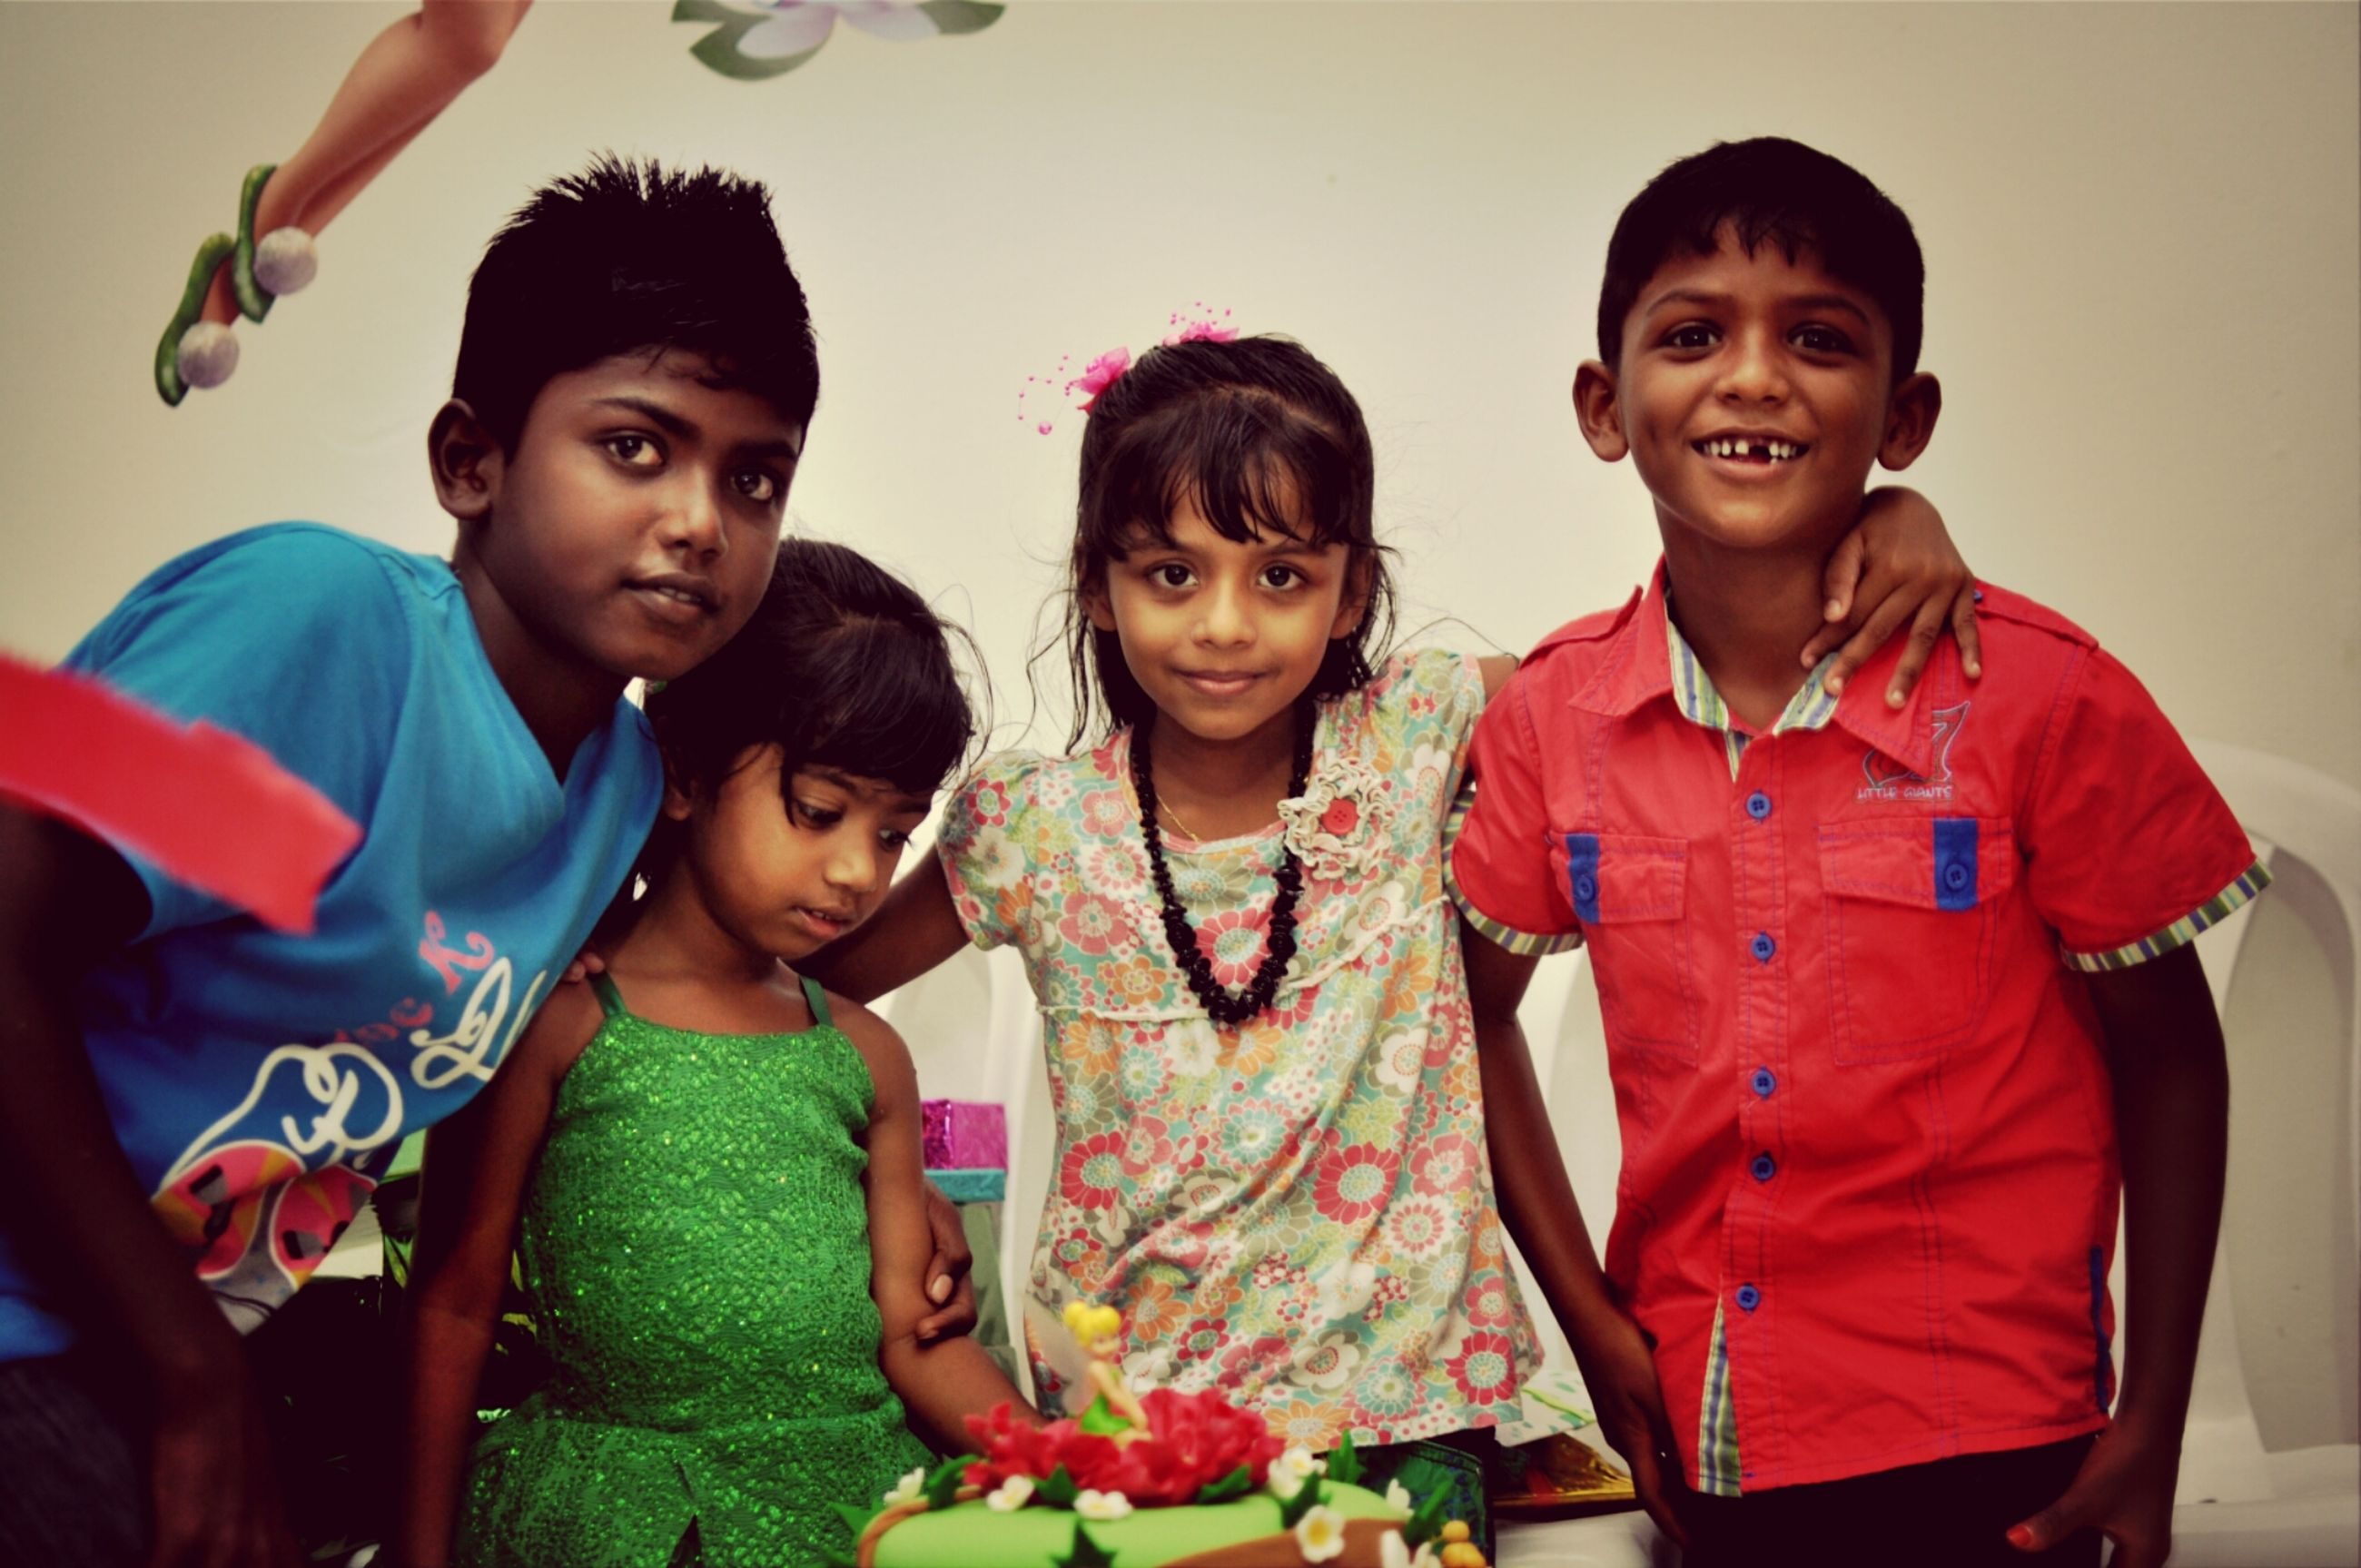 togetherness, bonding, lifestyles, love, happiness, person, leisure activity, portrait, friendship, smiling, looking at camera, family, casual clothing, front view, sister, fun, sibling, boys